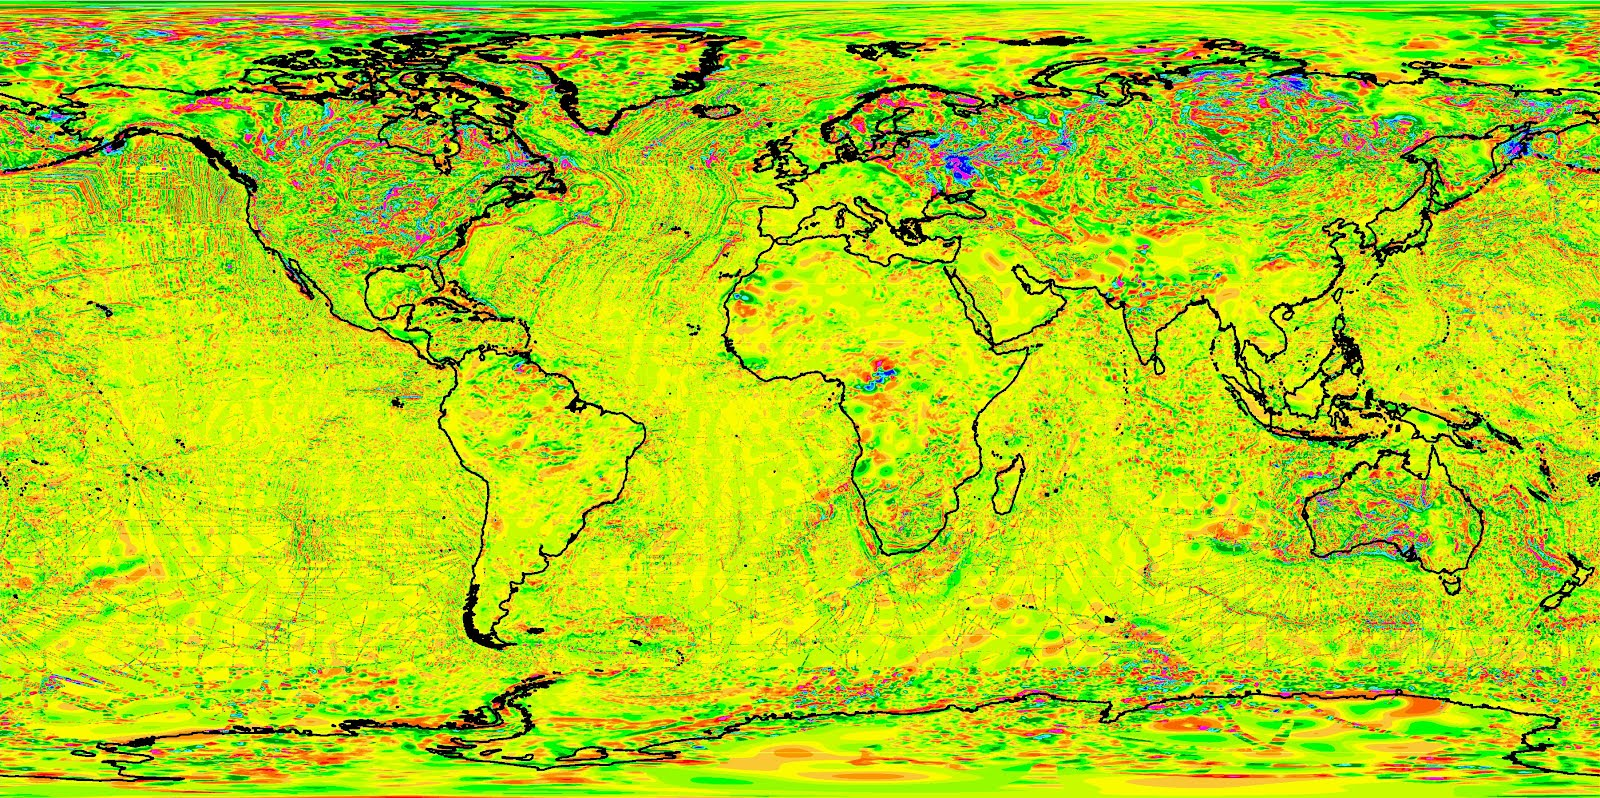 Magnetic Anomaly Map Of The World.One For The Road World Digital Magnetic Anomaly Map